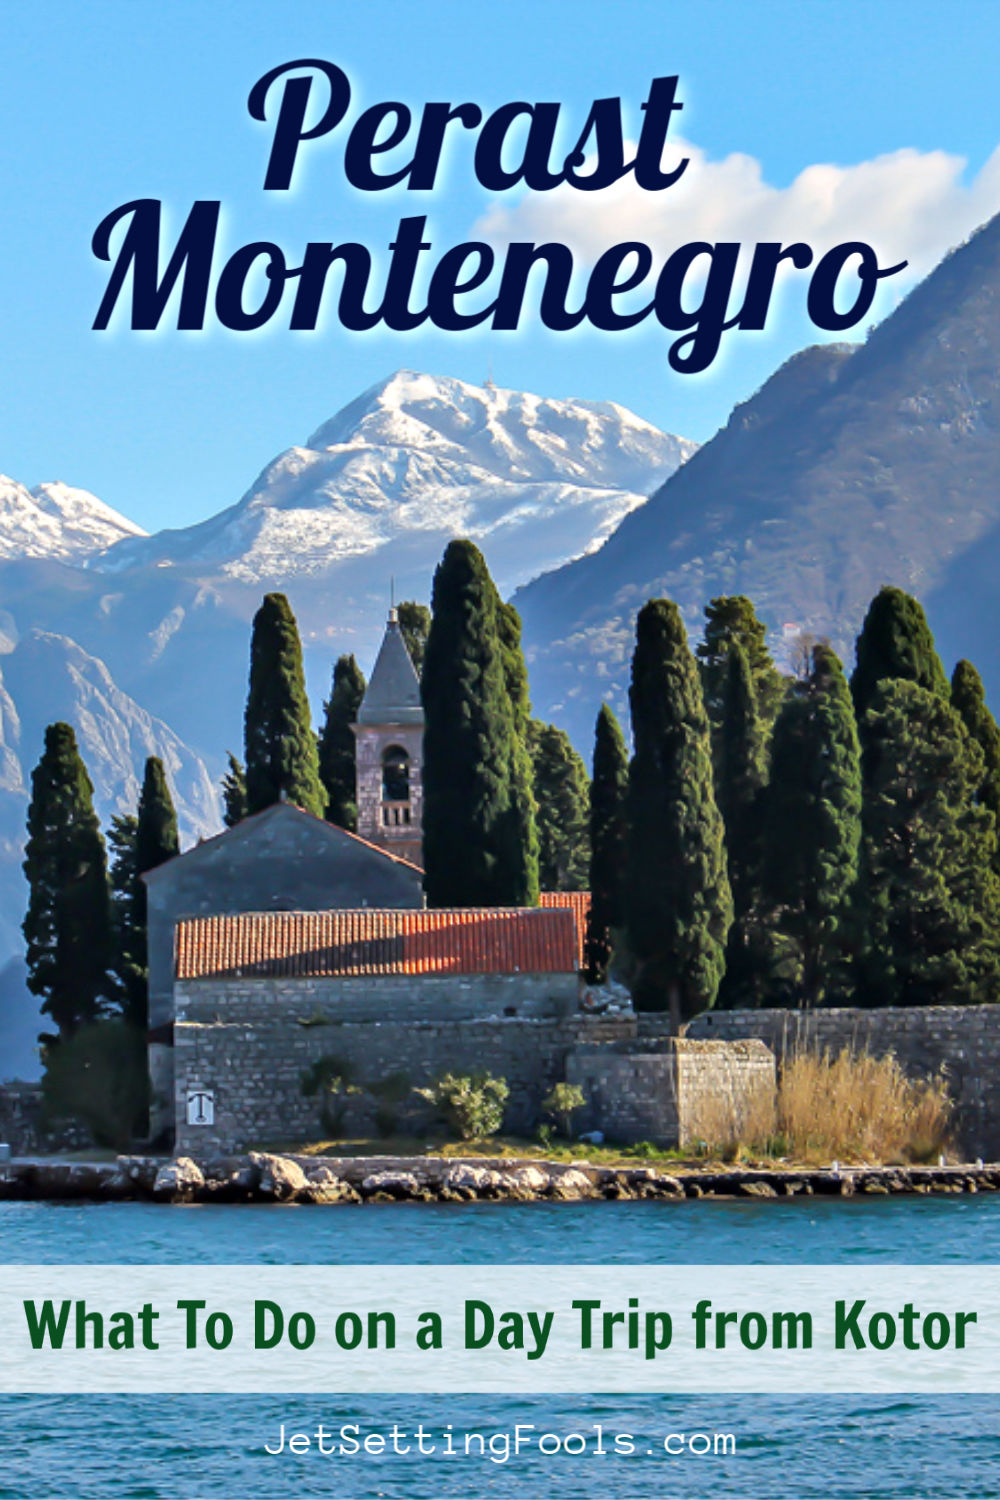 Perast, Montenegro Day Trip from Kotor by JetSettingFools.com